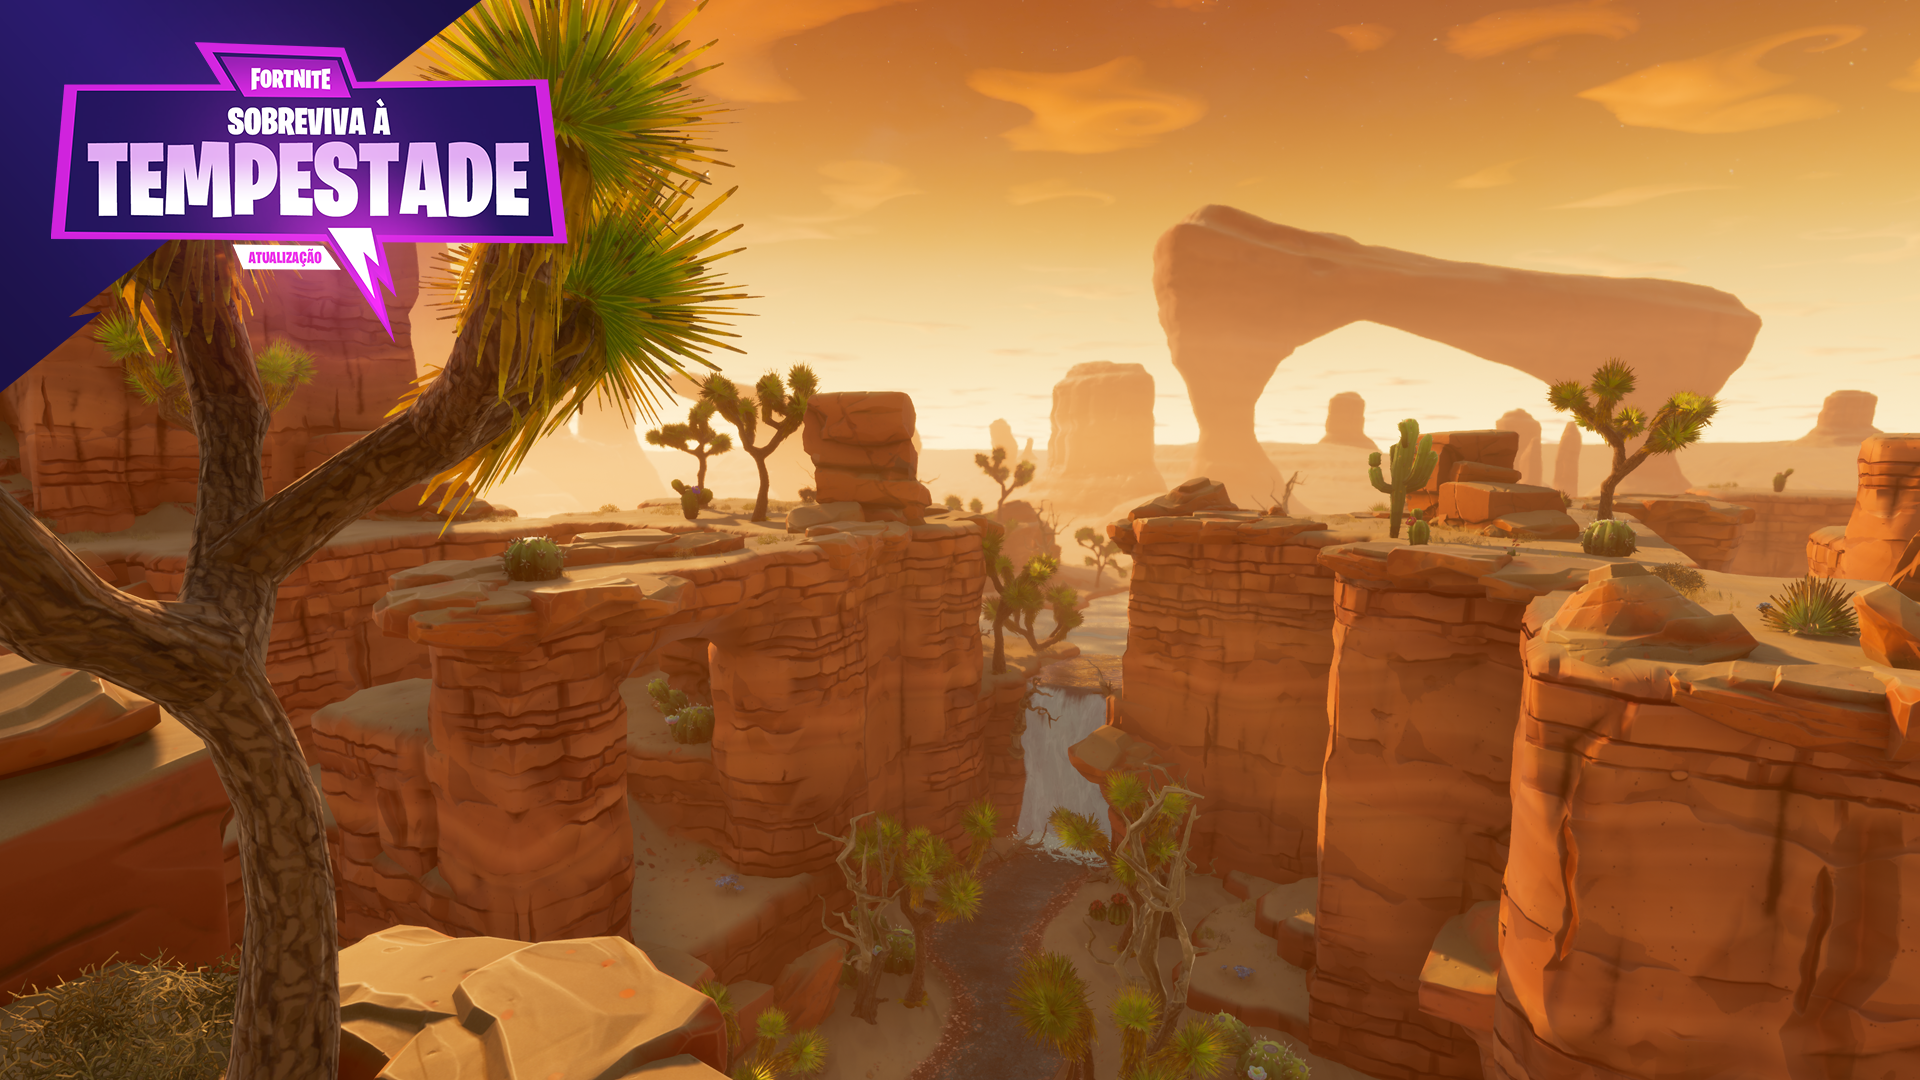 Fortnite%2Fblog%2Fsurvive-the-storm---release-notes%2FPT_3-Canny-Valley-1920x1080-139b4b065bfd1eff956b1779de20dda3bc97936f